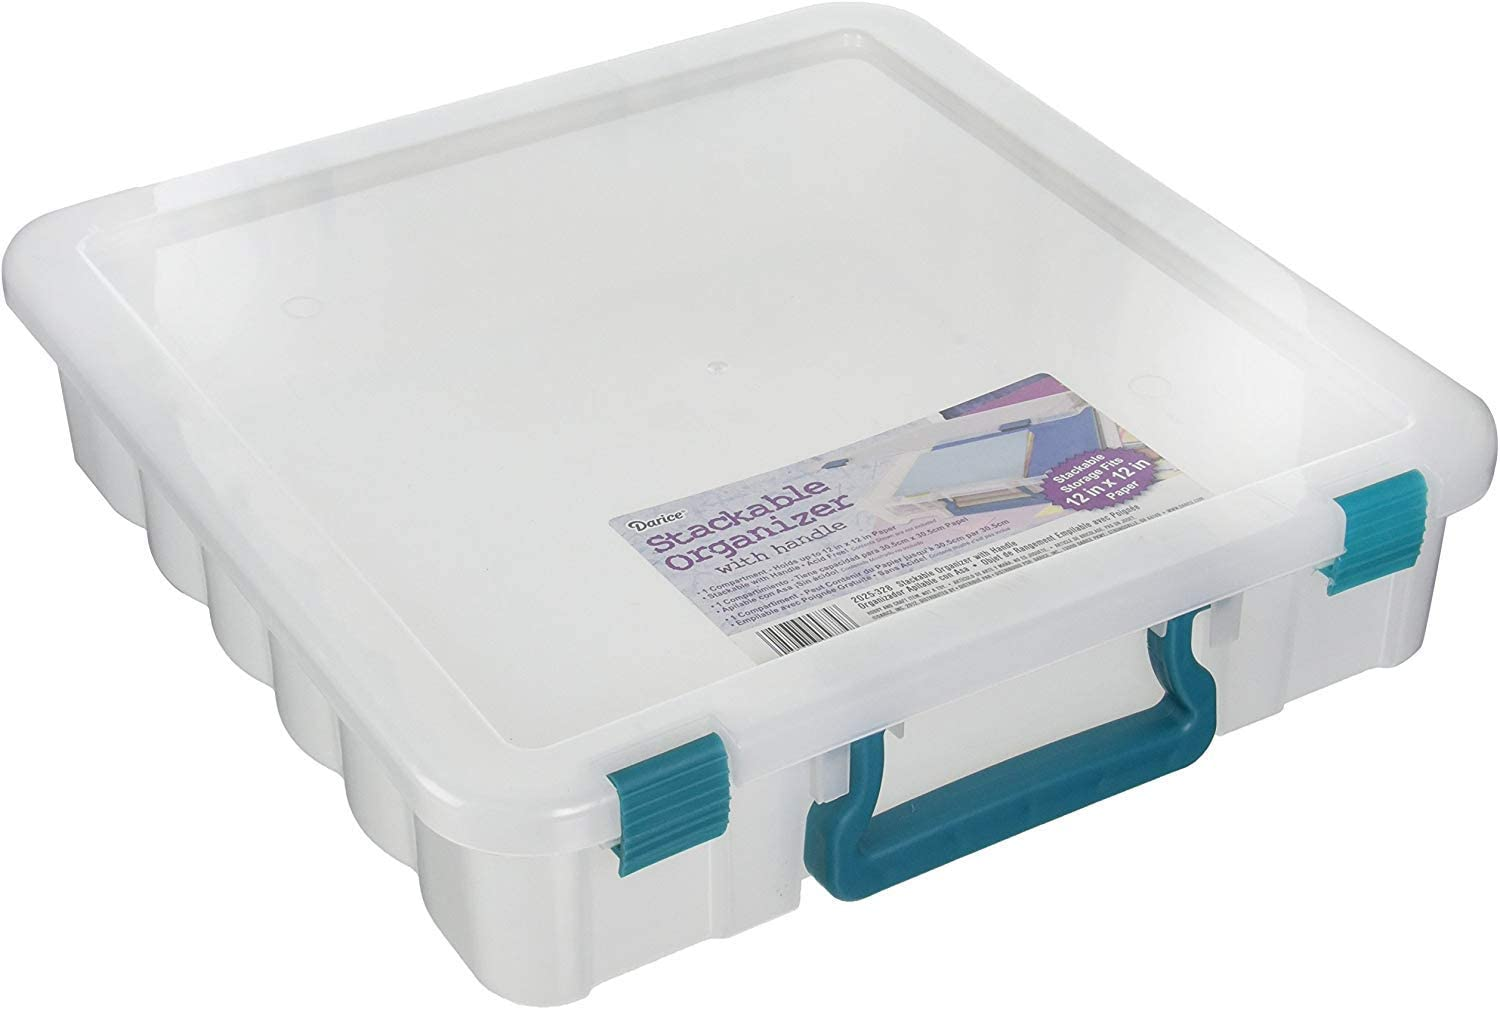 'Darice Clear Organizer with Handle 14x14 inches